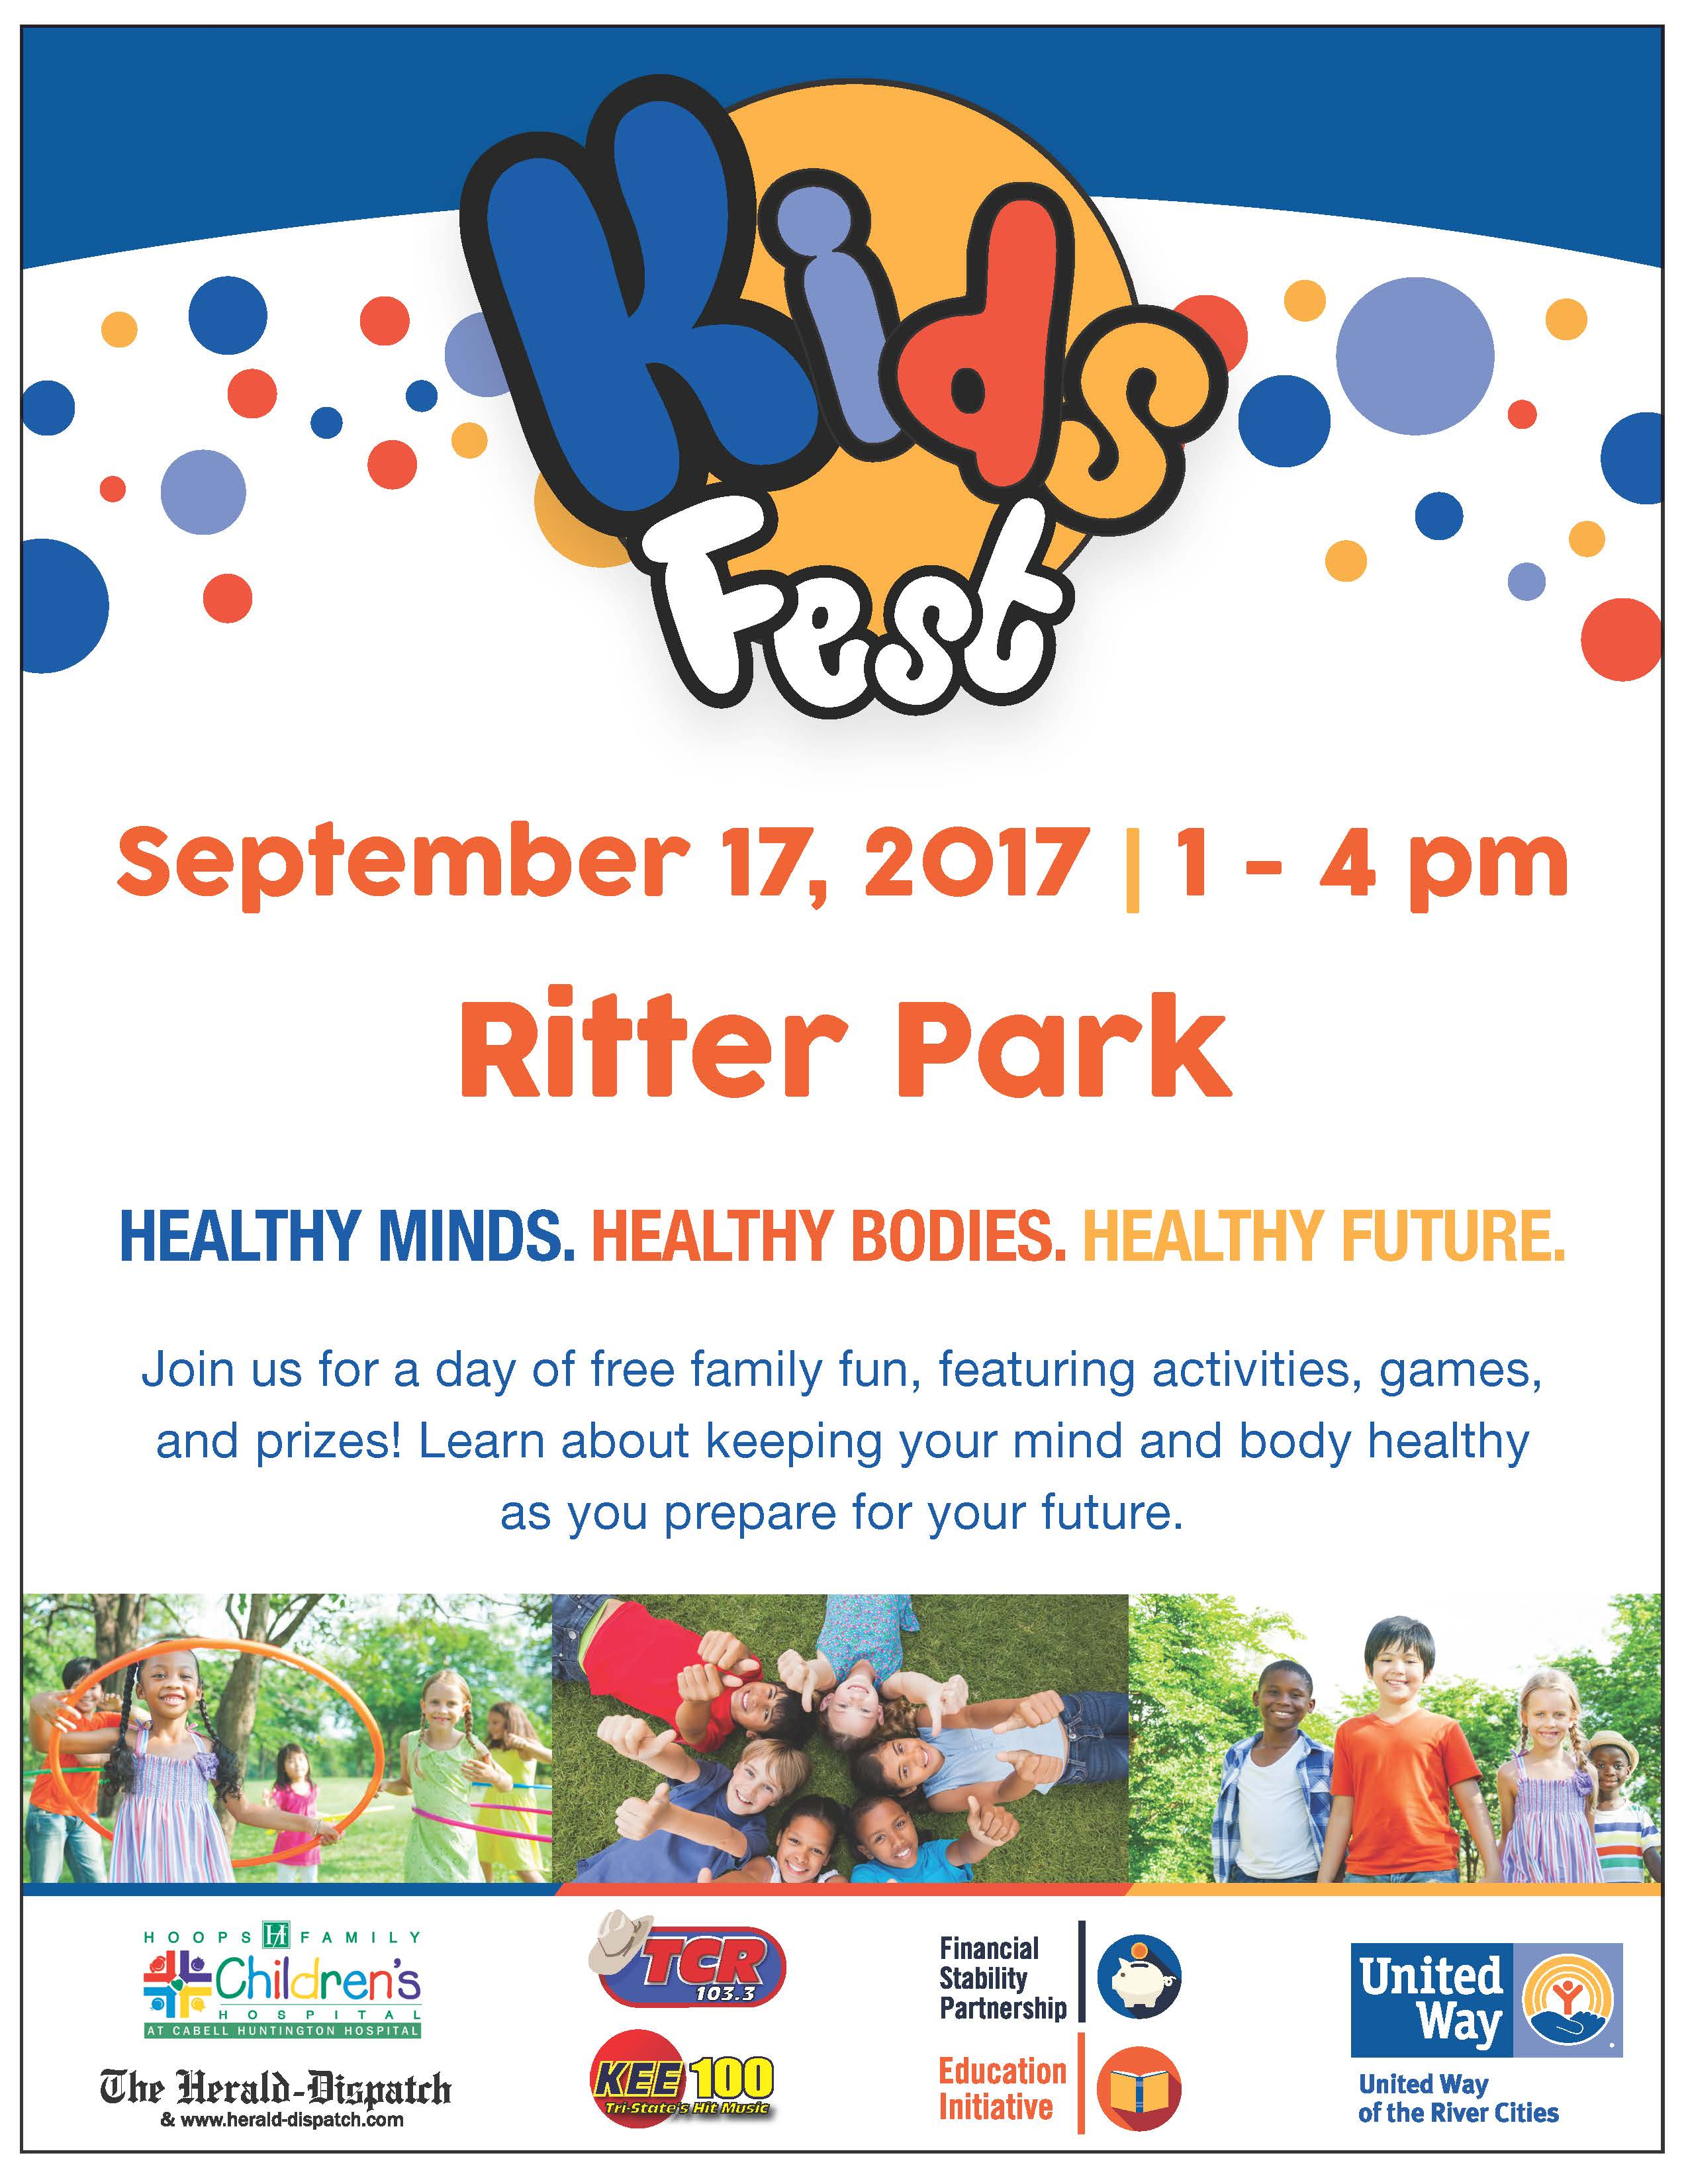 Save the Date Kids Fest in Ritter Park on Sept 17